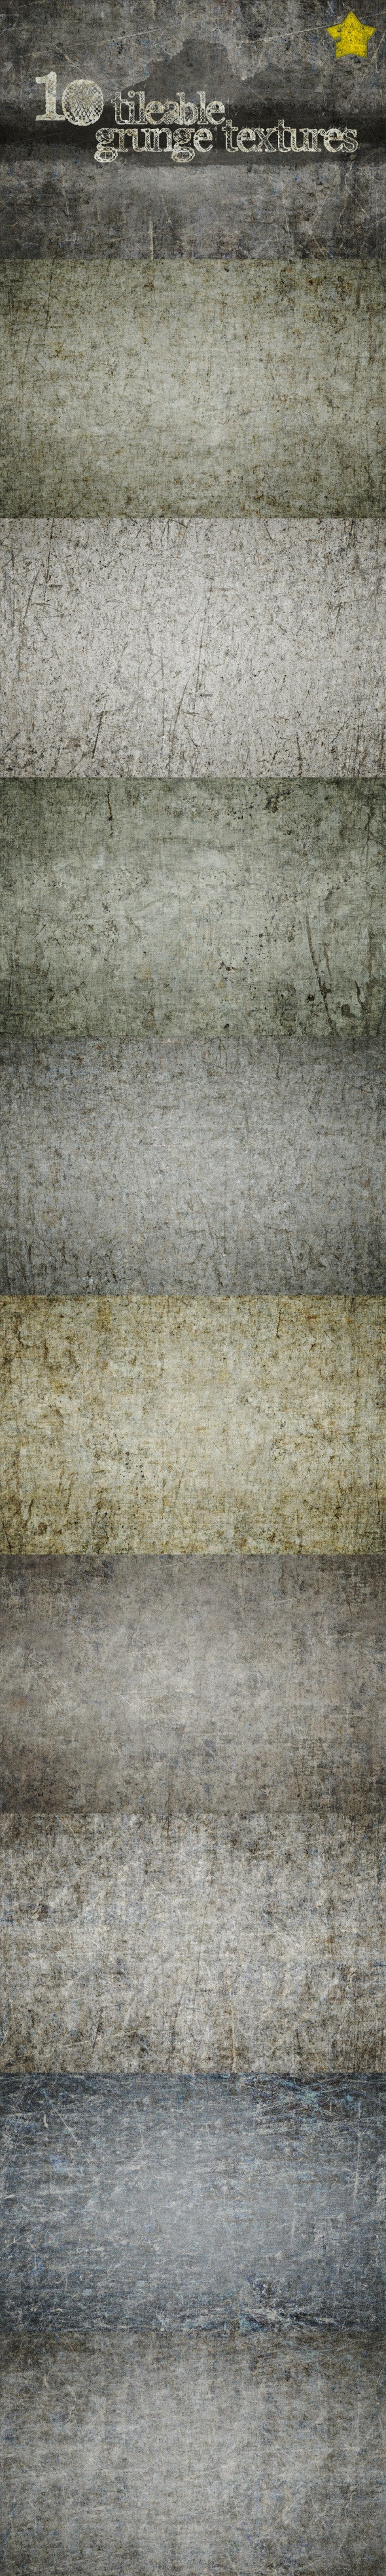 10 Tileable Grunge Textures  - Miscellaneous Textures / Fills / Patterns